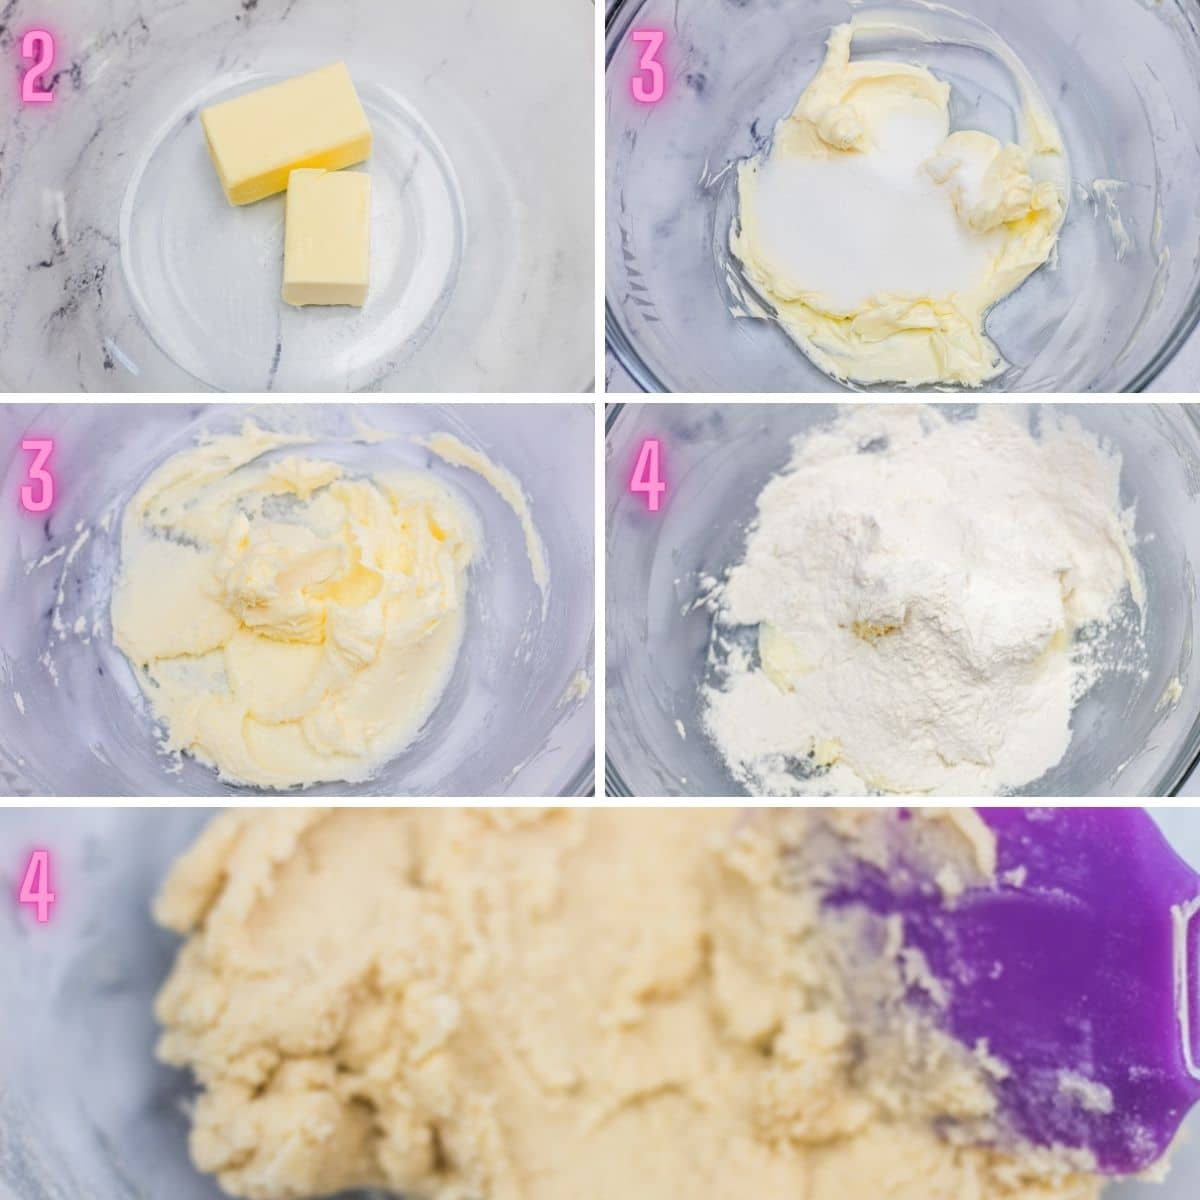 5 step by step process photos of mixing the fork biscuit dough.